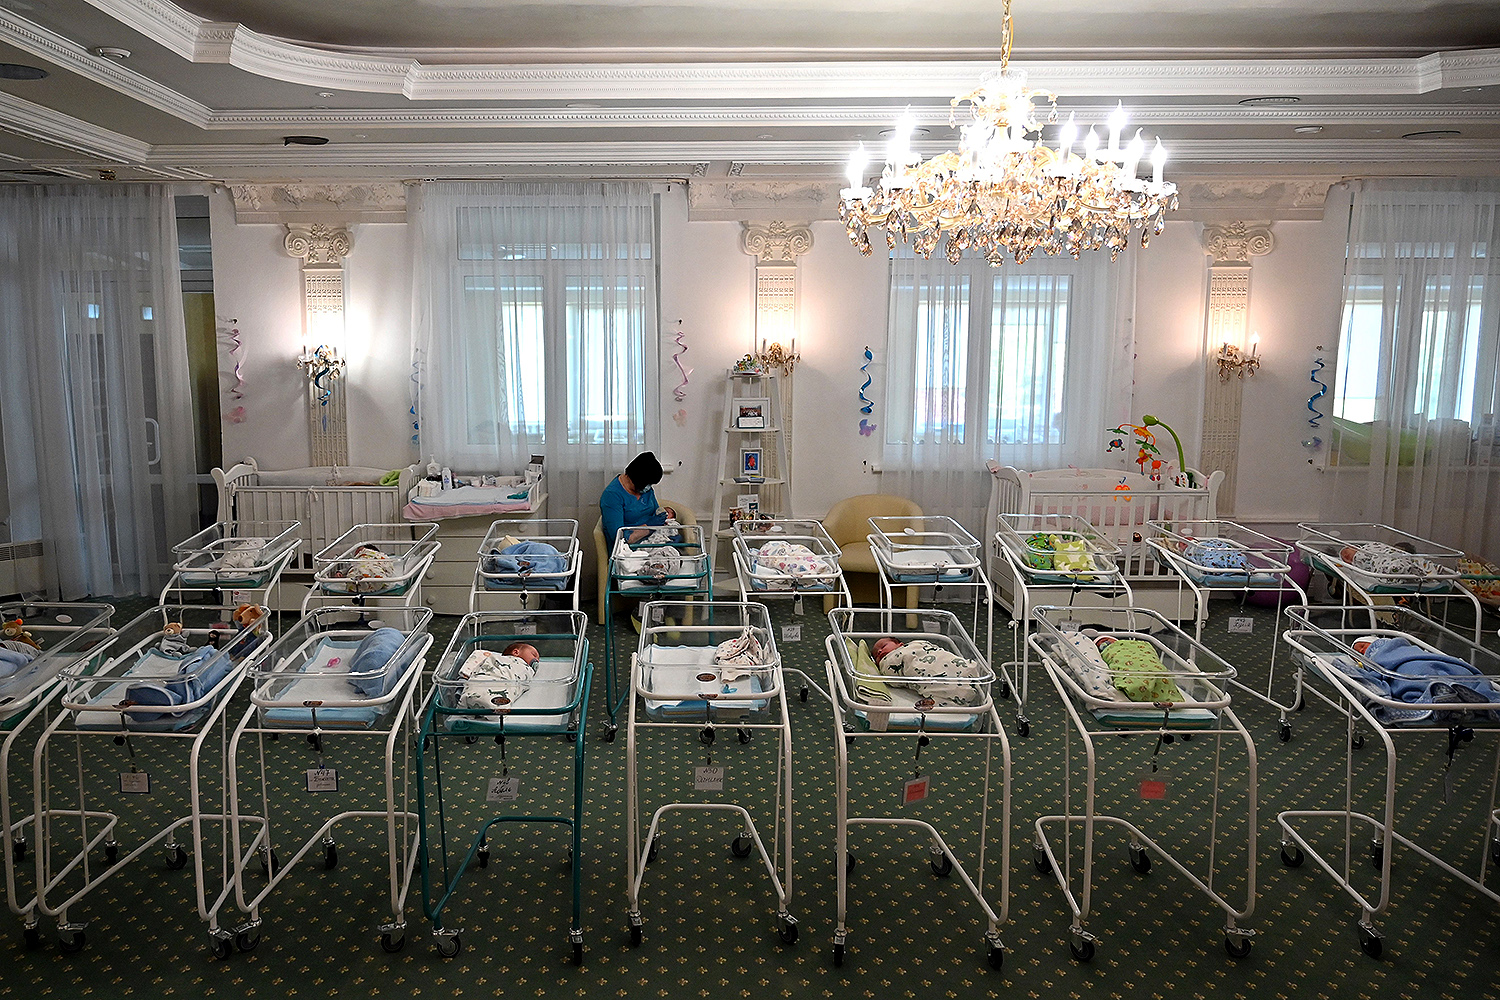 A nurse cares for surrogate-born newborns at Kiev's Venice Hotel on May 15. More than 100 babies born to surrogate mothers have been stranded in Ukraine as their foreign parents can't collect them because of border closures imposed during the pandemic. SERGEI SUPINSKY/AFP via Getty Images